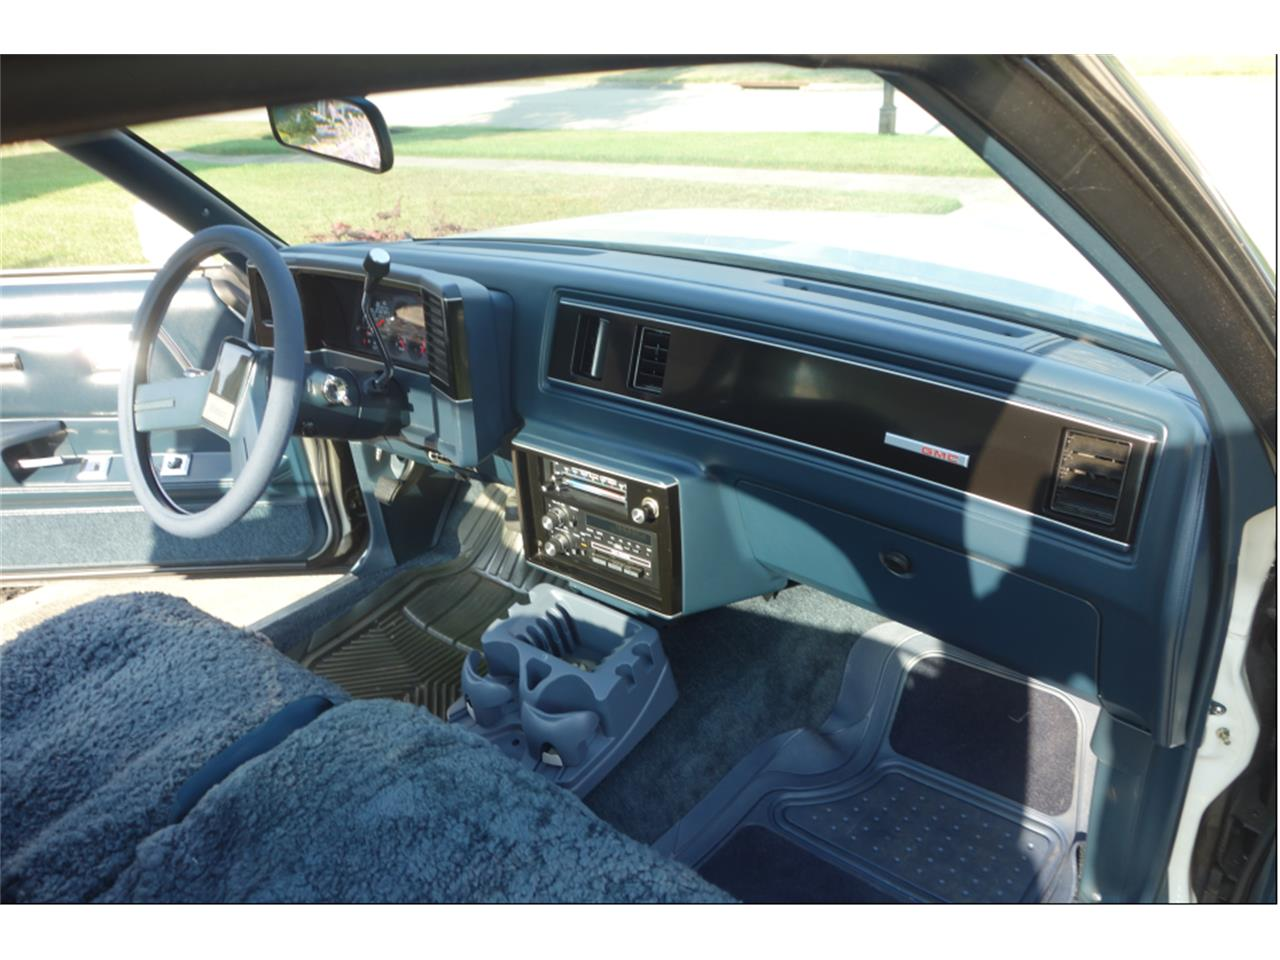 1987 GMC Caballero for sale in liberty township, OH – photo 3